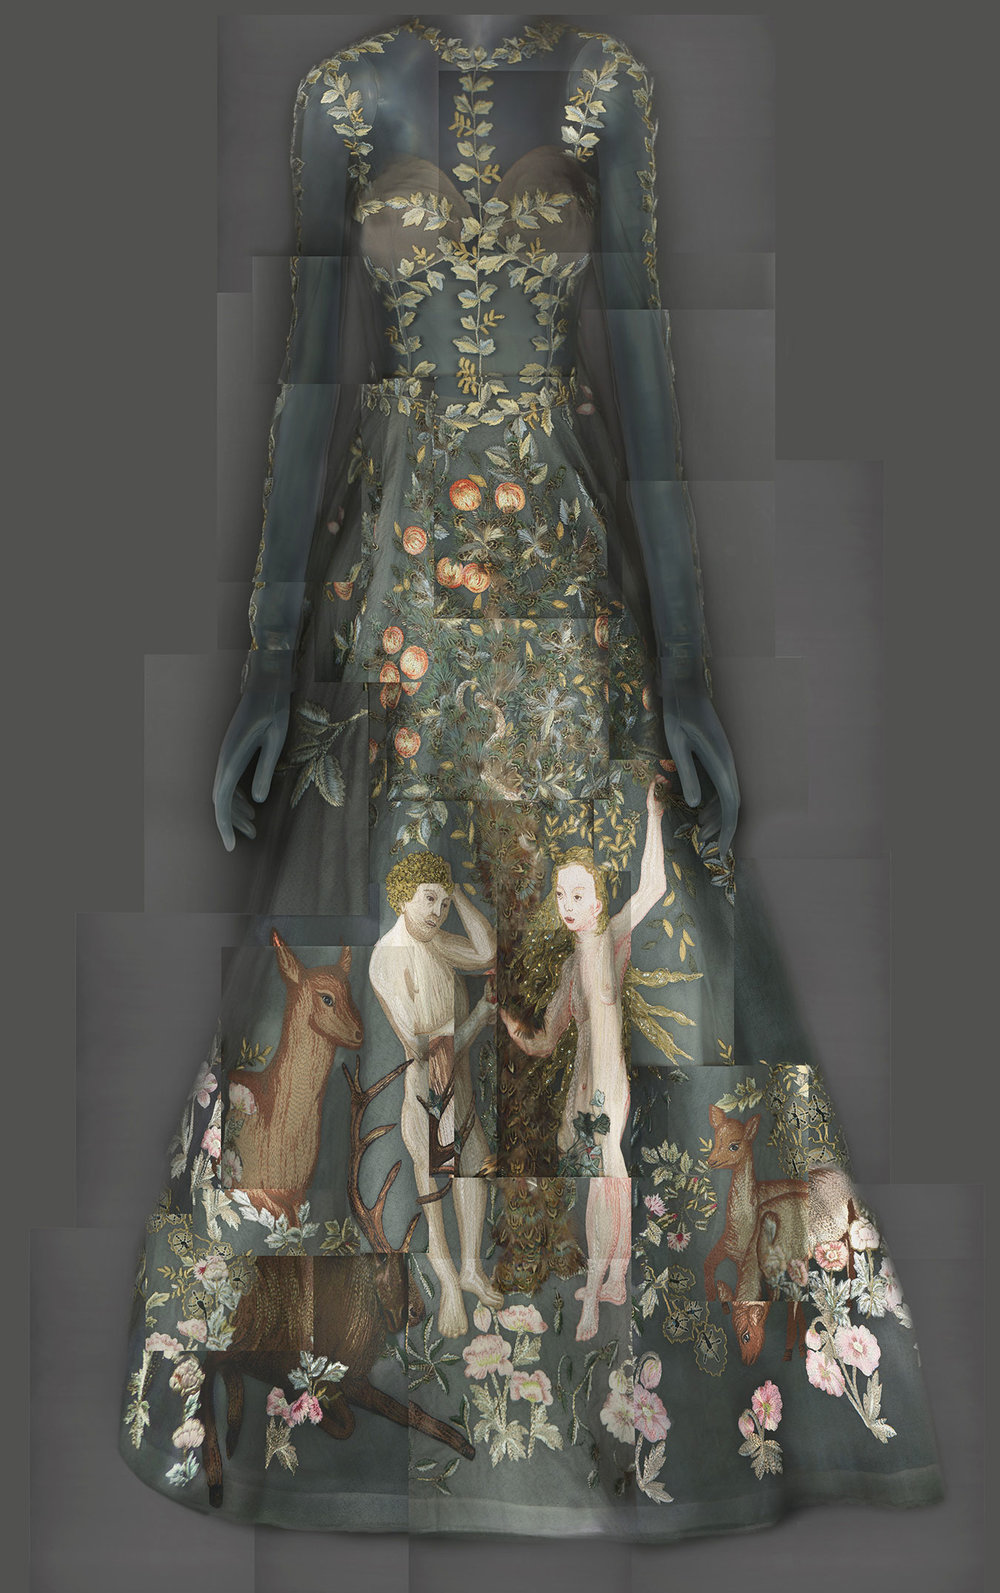 Evening Dress by Maria Grazia Chiuri and Pierpaolo Piccioli for  VALENTINO  | SS 2014 | Haute Couture | Courtesy of Valentino S.p.A. | Image courtesy of The Metropolitan Museum of Art, Digital Composite Scan by Katerina Jebb